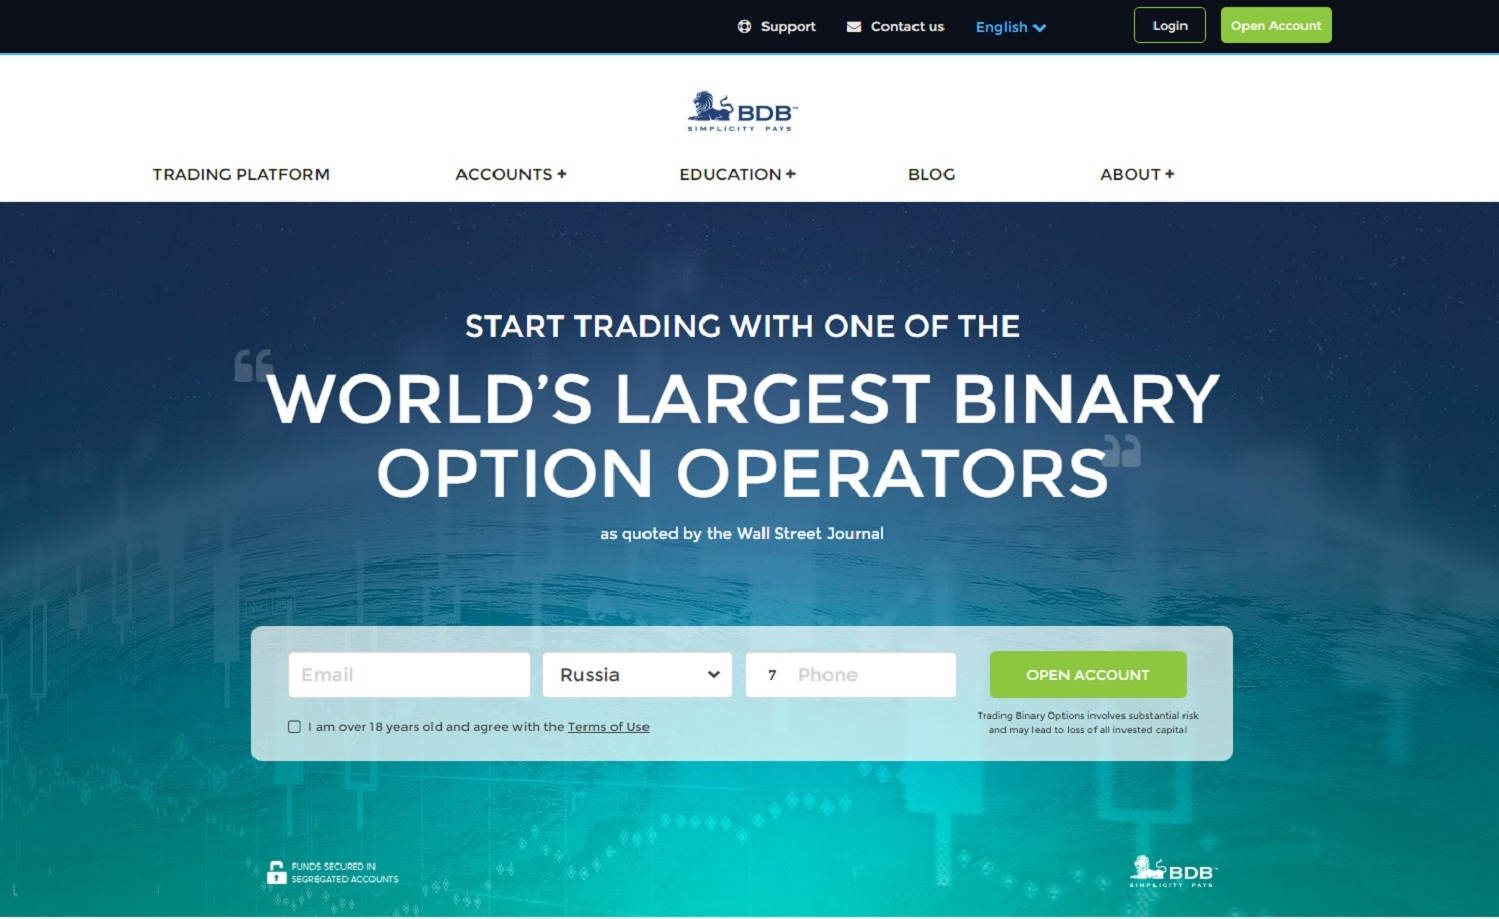 Opsi binary broker menerima neteller